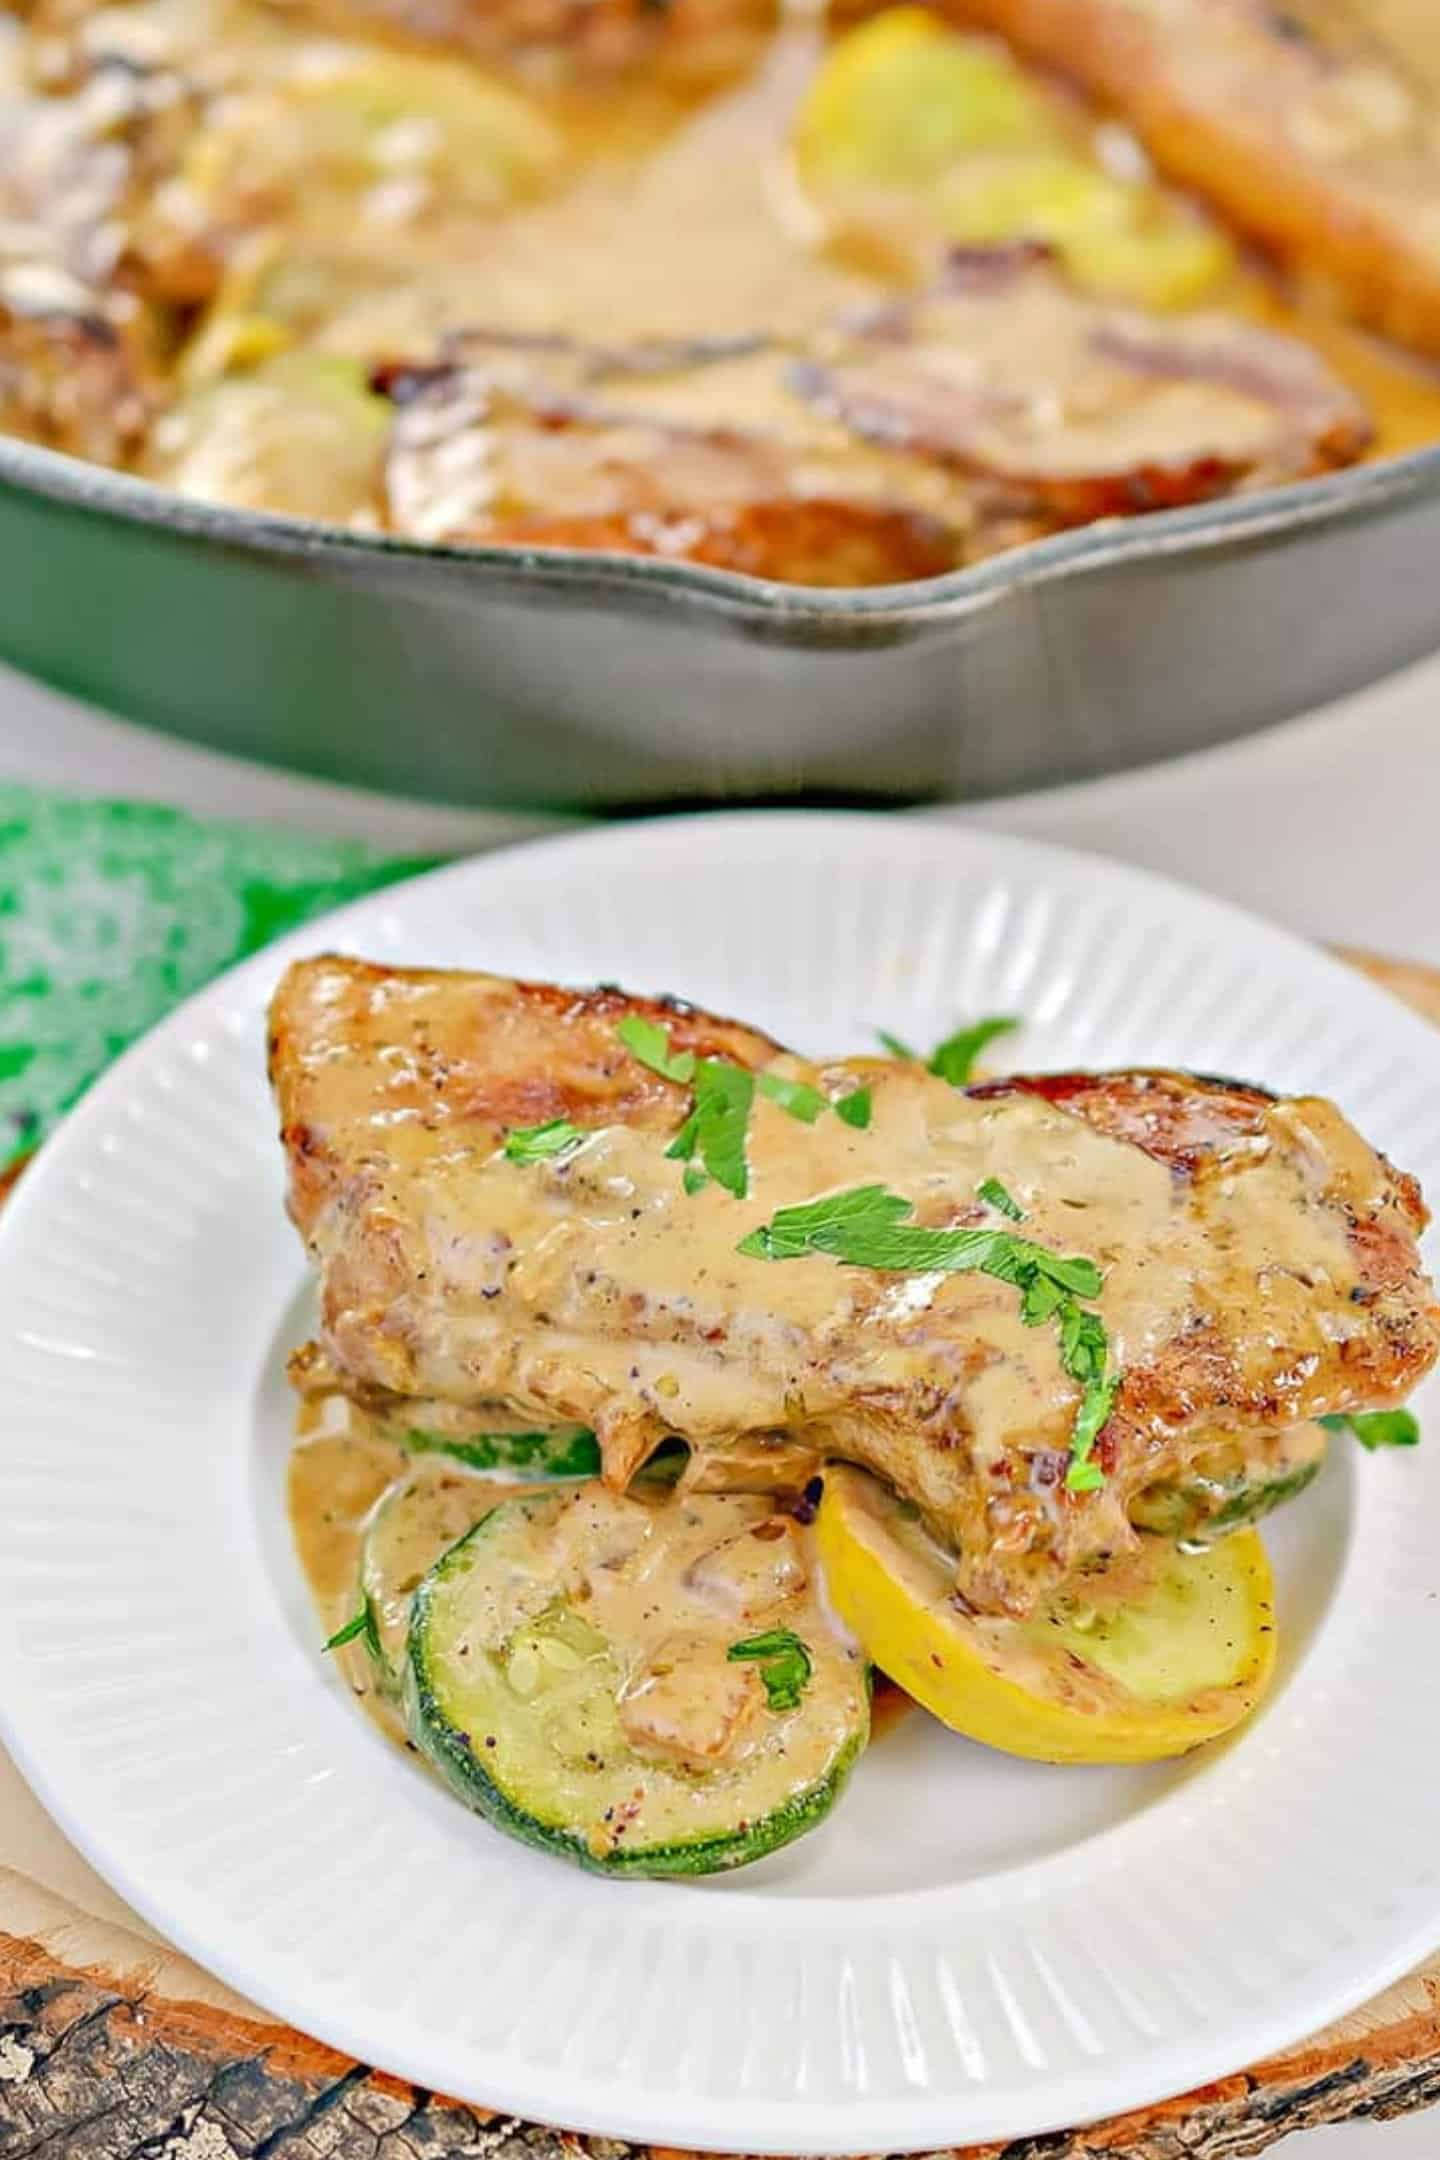 pan seared thin pork chops on white plate covered in creamy mustard sauce